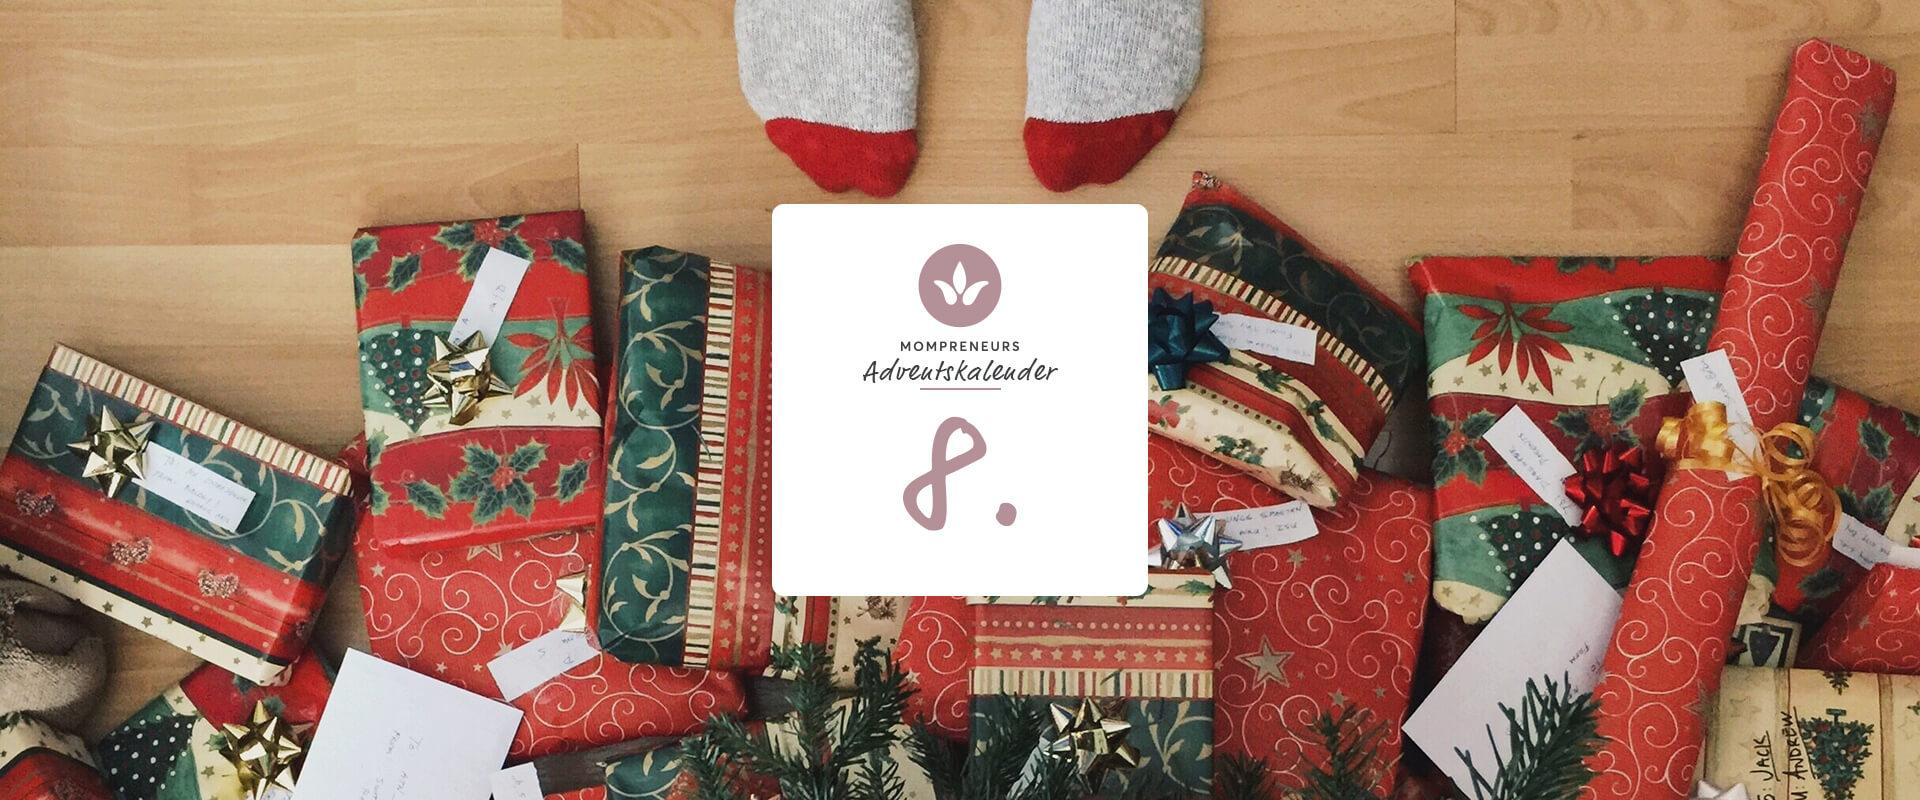 MomPreneurs Adventskalender Anette Weiss